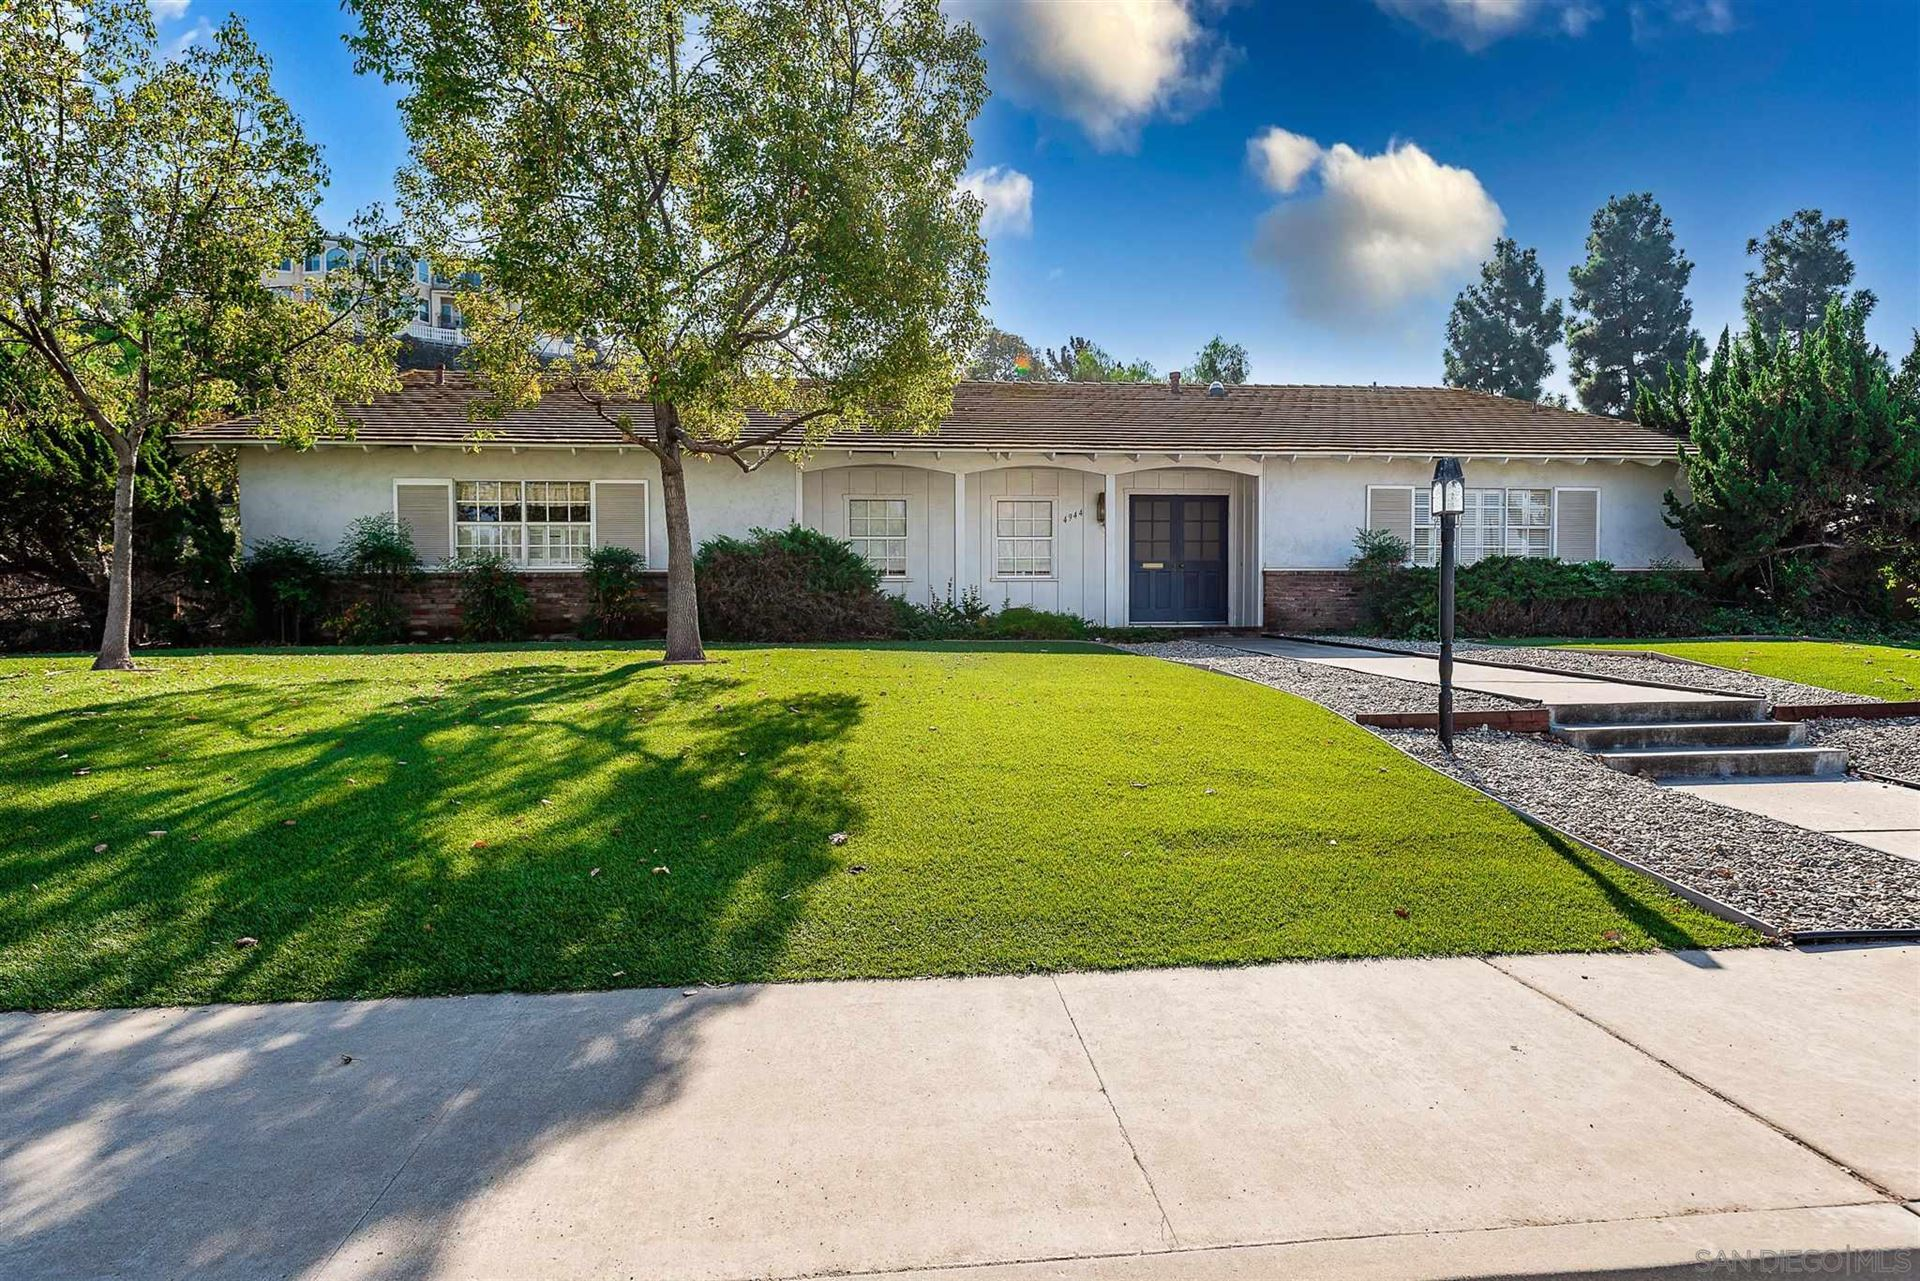 Photo of 4944 Golfglen, Bonita, CA 91902 (MLS # 200052757)